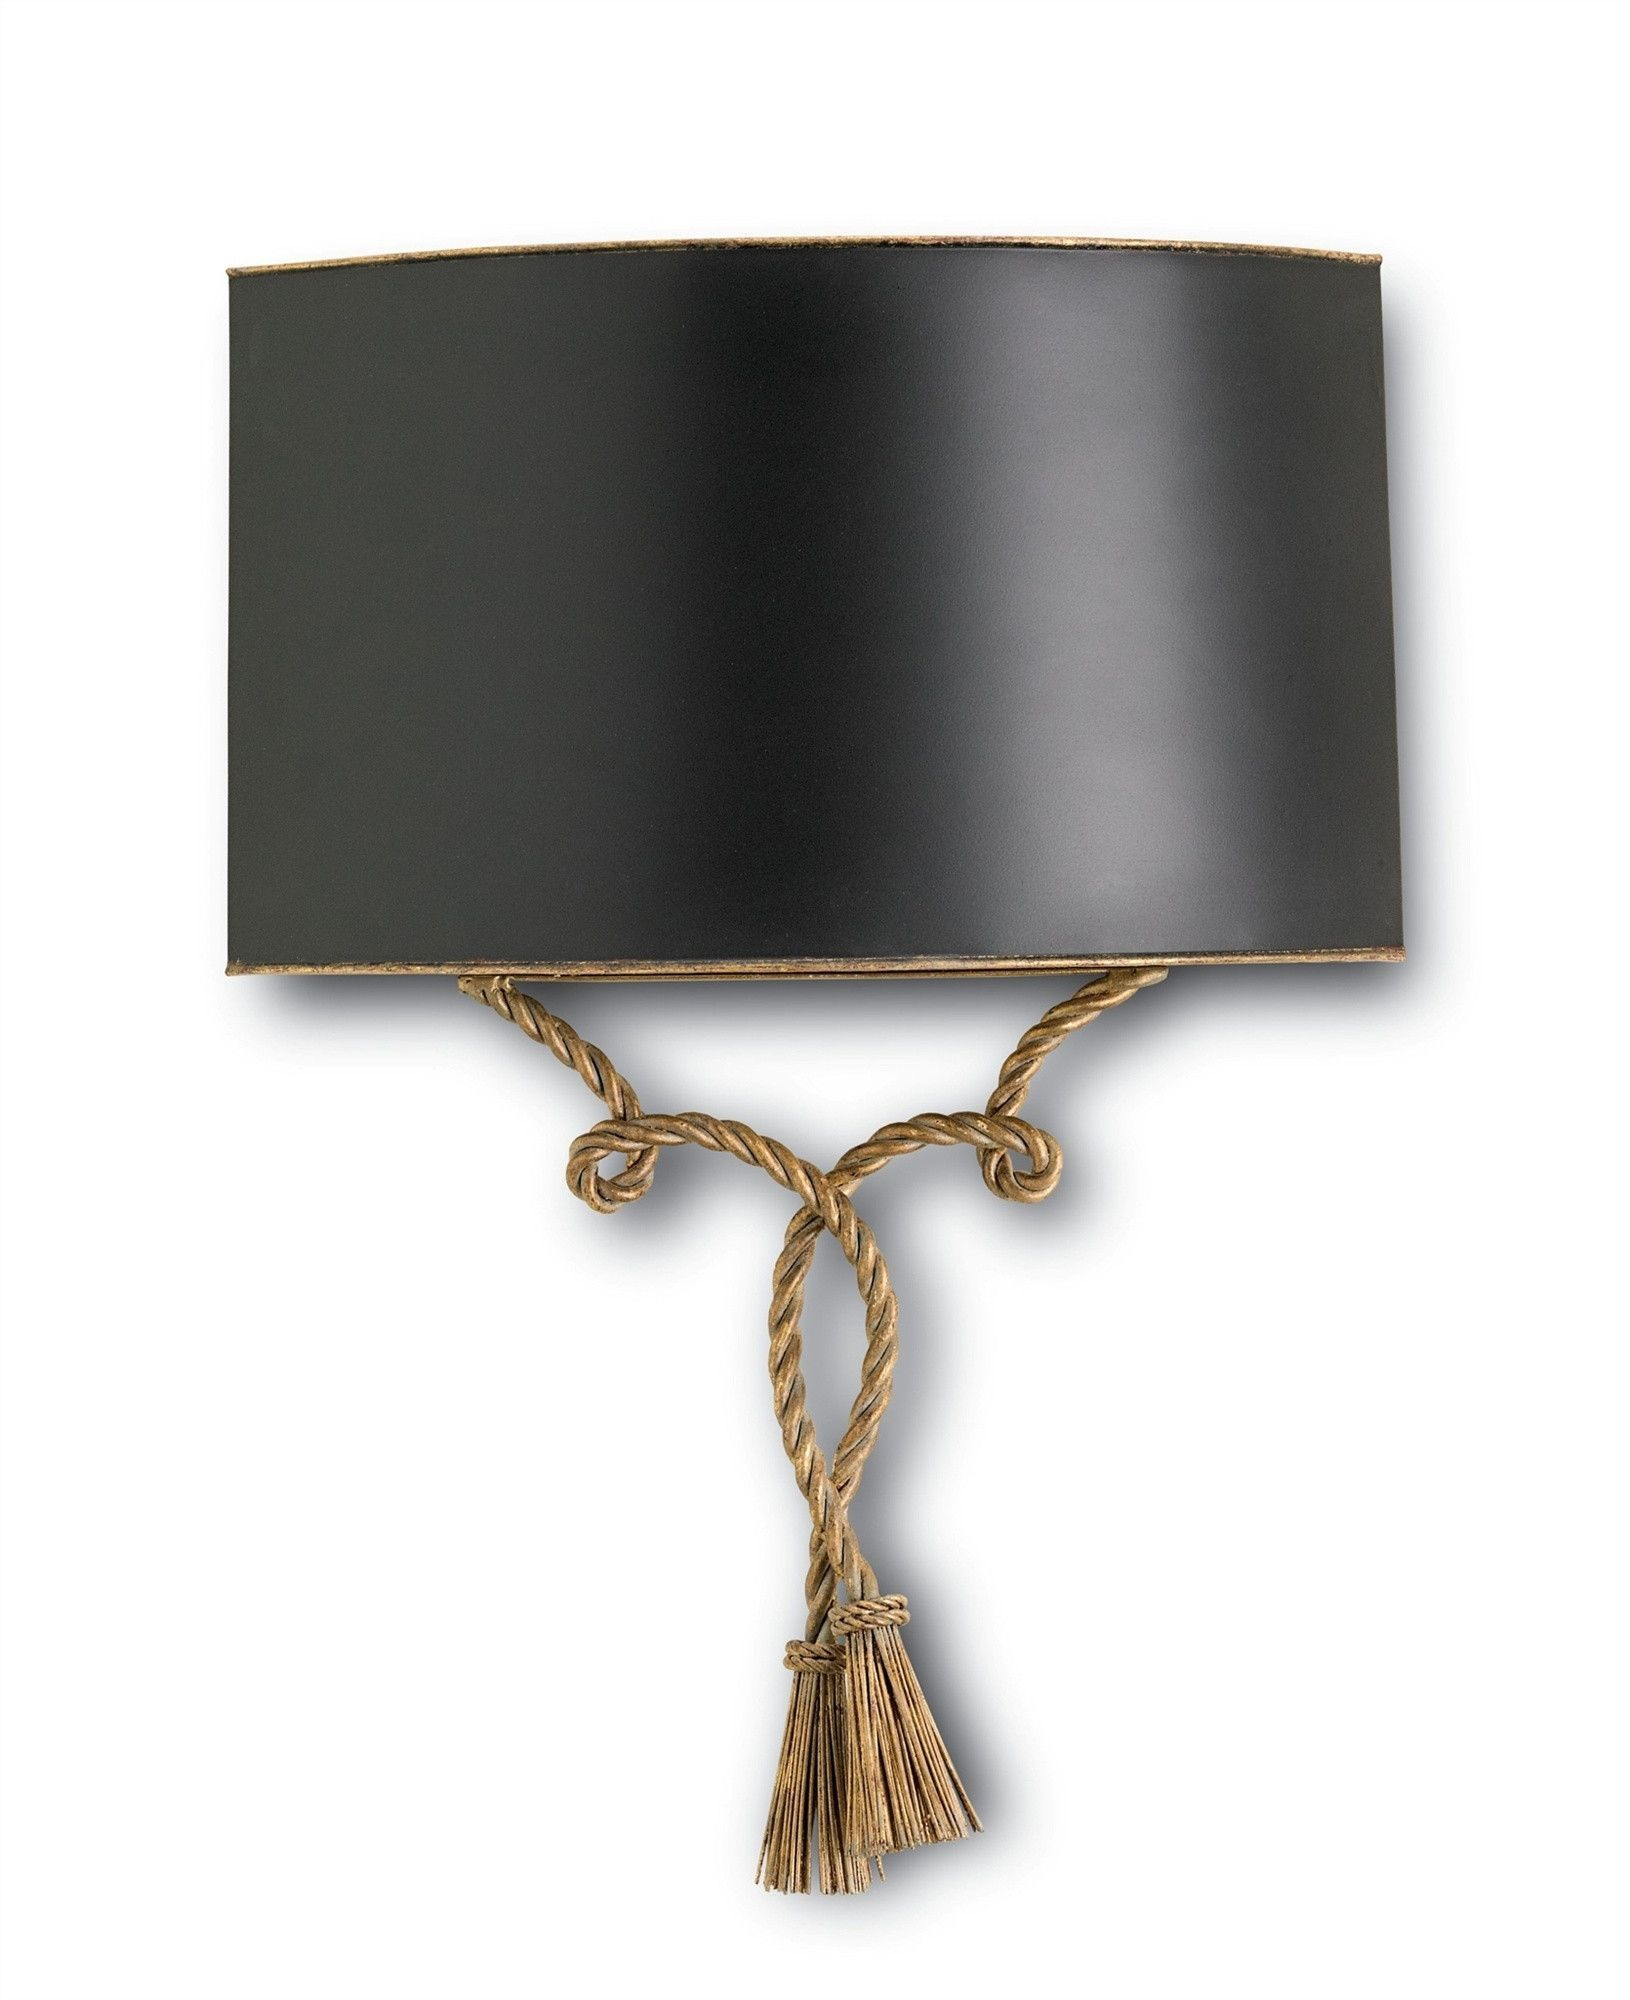 Cool Room Lamps | Wall sconces, Living room candles and Walls